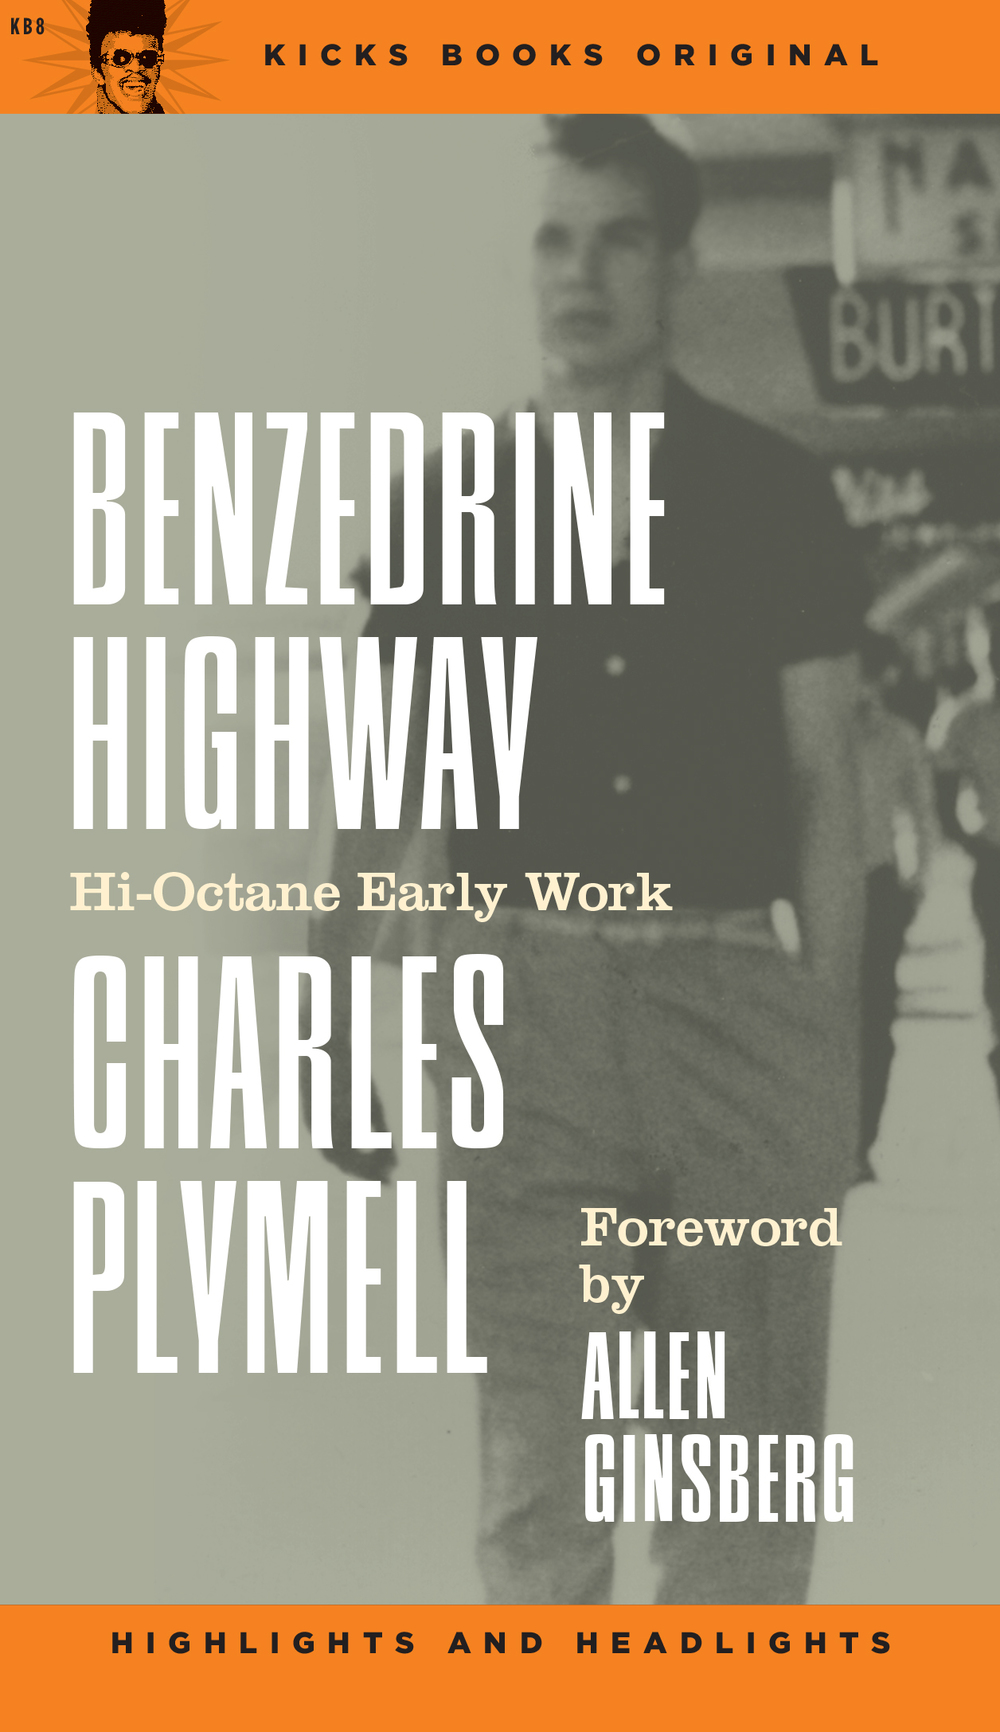 Charles Plymell - Benzedrine Highway cover